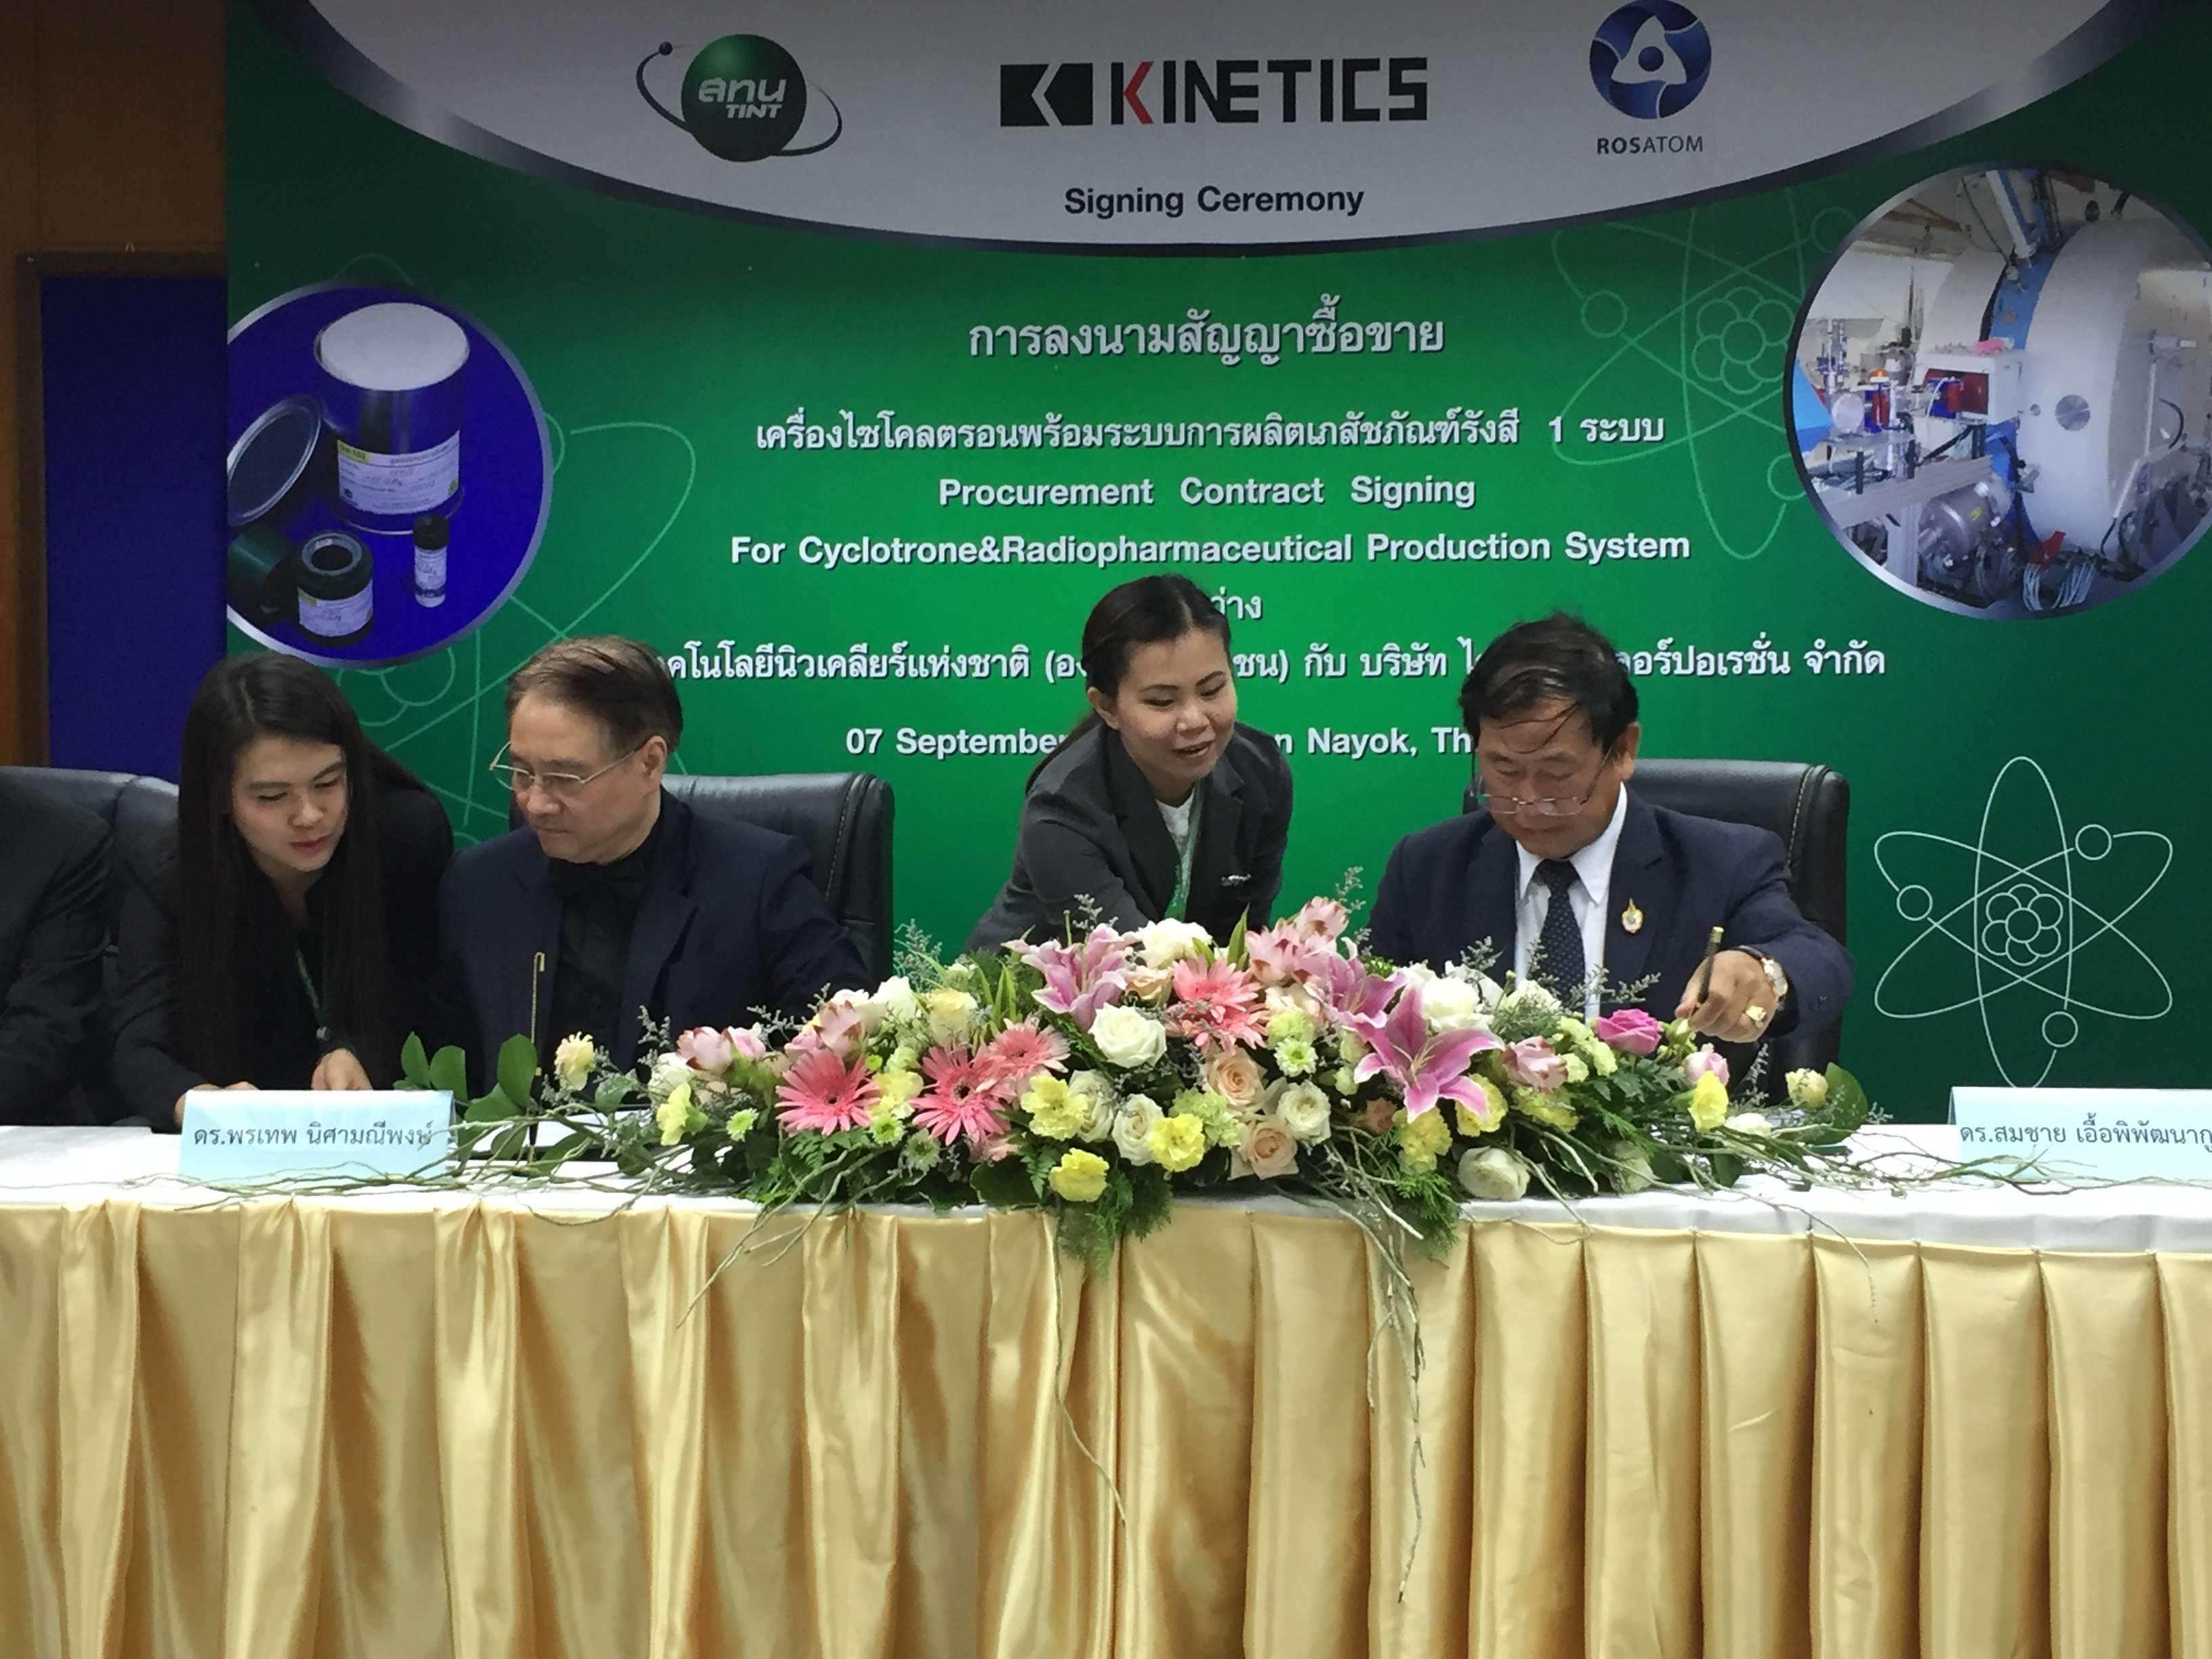 ROSATOM to implement Cyclotron & Radiopharmaceutical Complex Project in Thailand